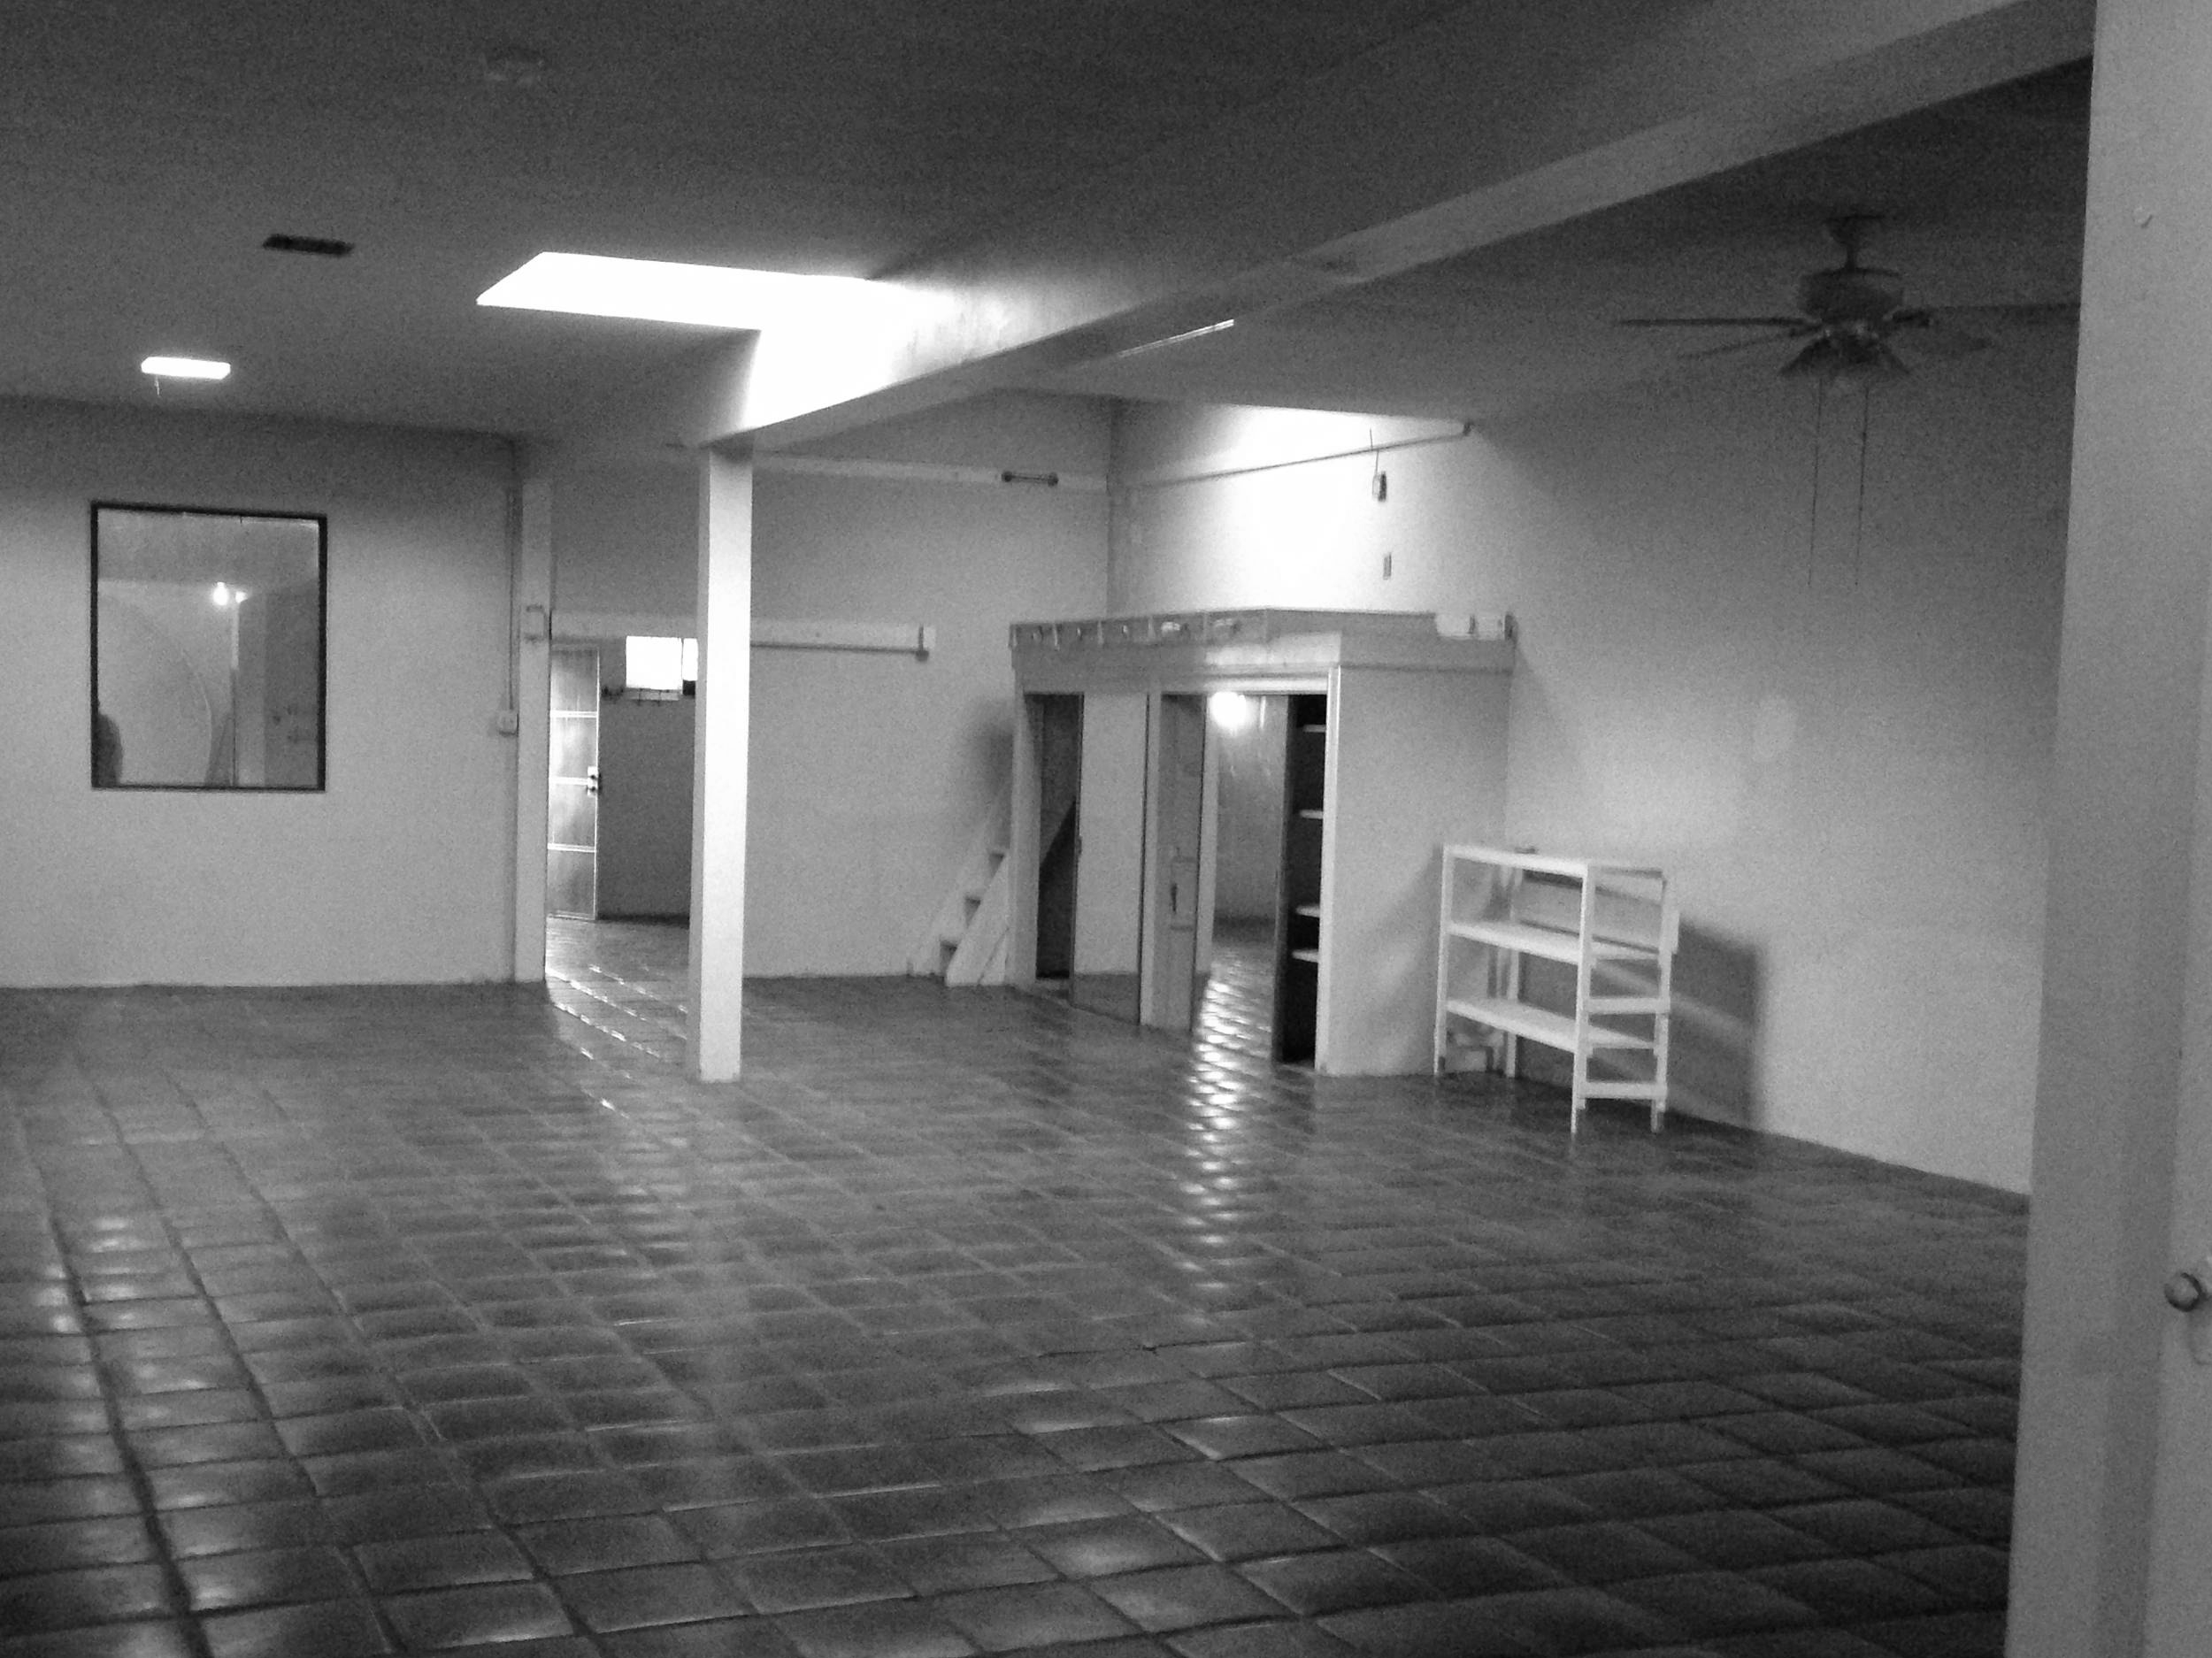 Photo of the building's interior prior to the renovation.